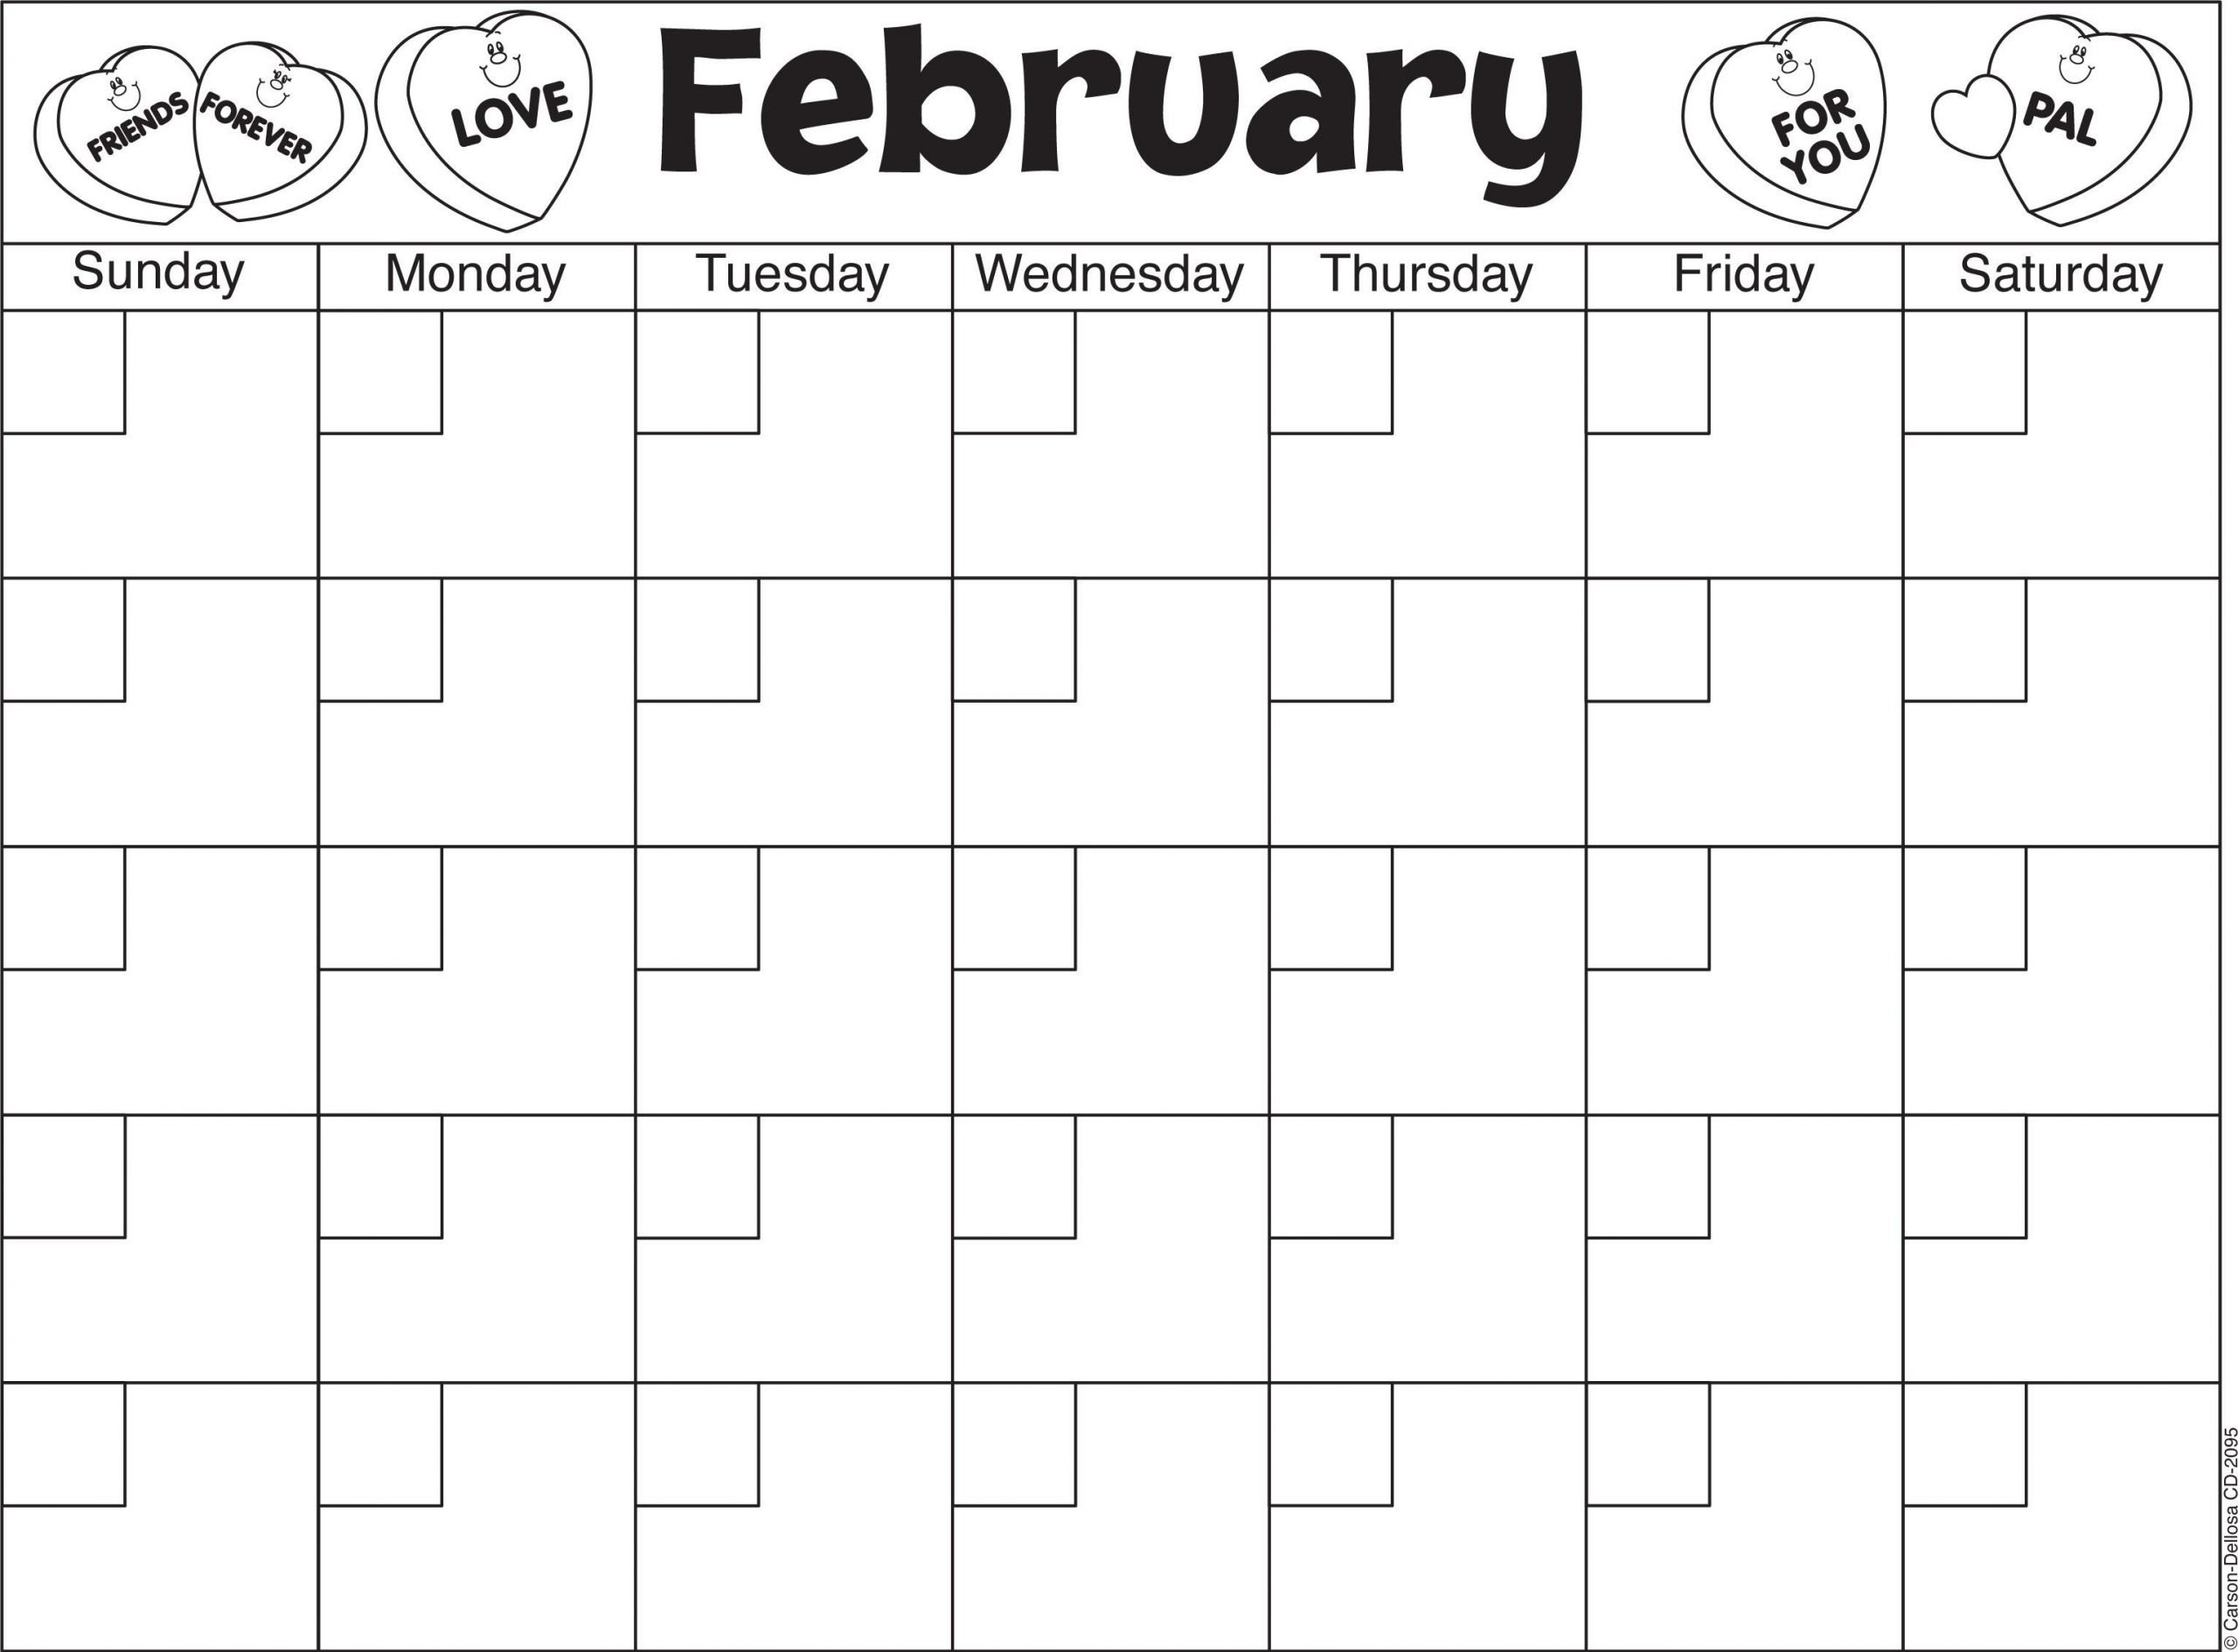 Calendar Worksheet for Kindergarten February Calendar Template Great Way to Practice Counting